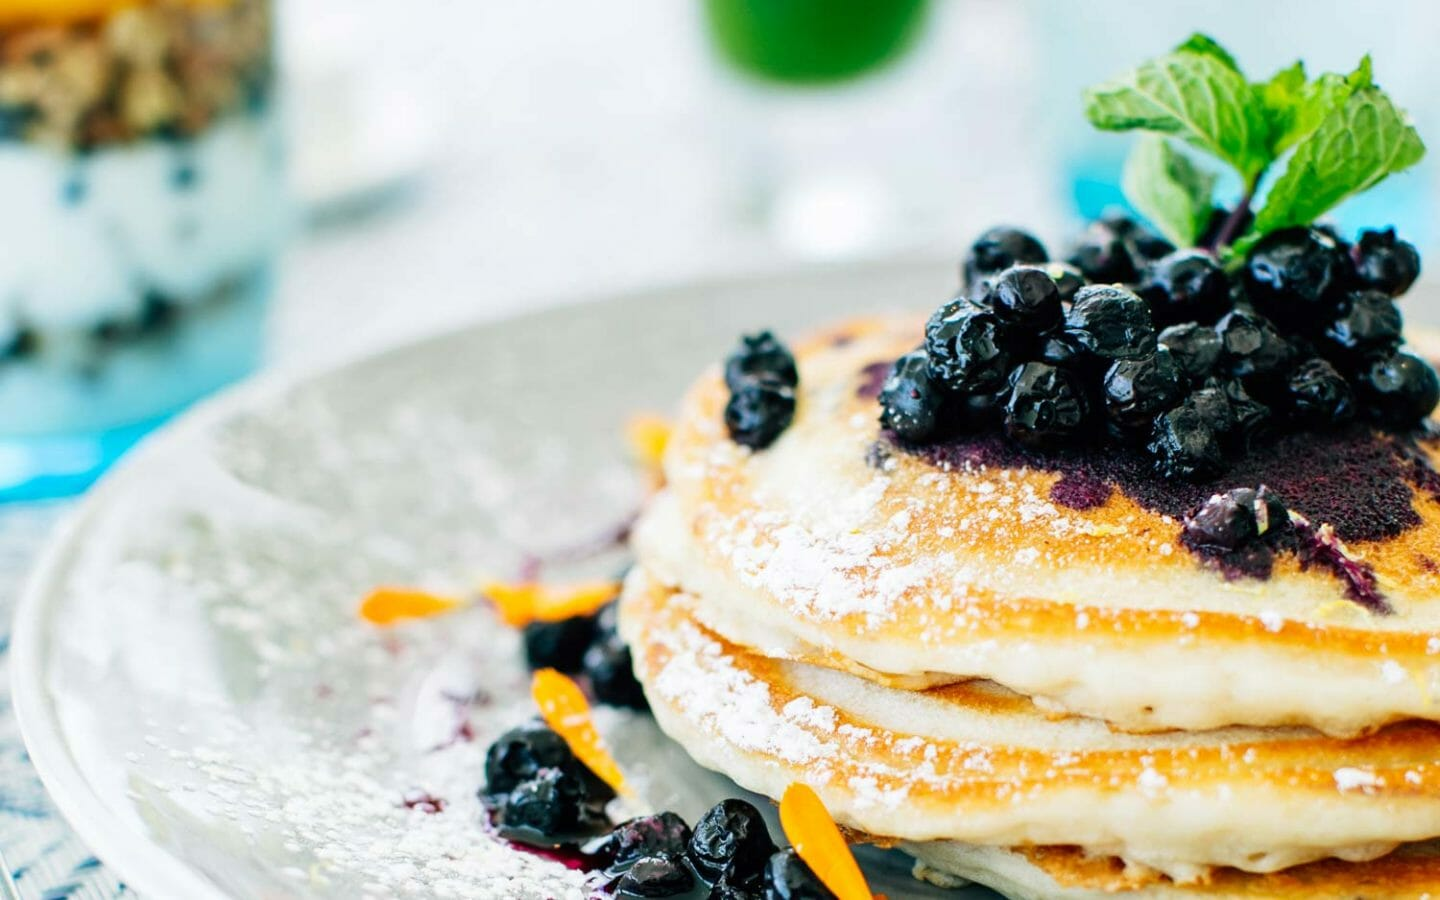 plate of pancake with blueberries